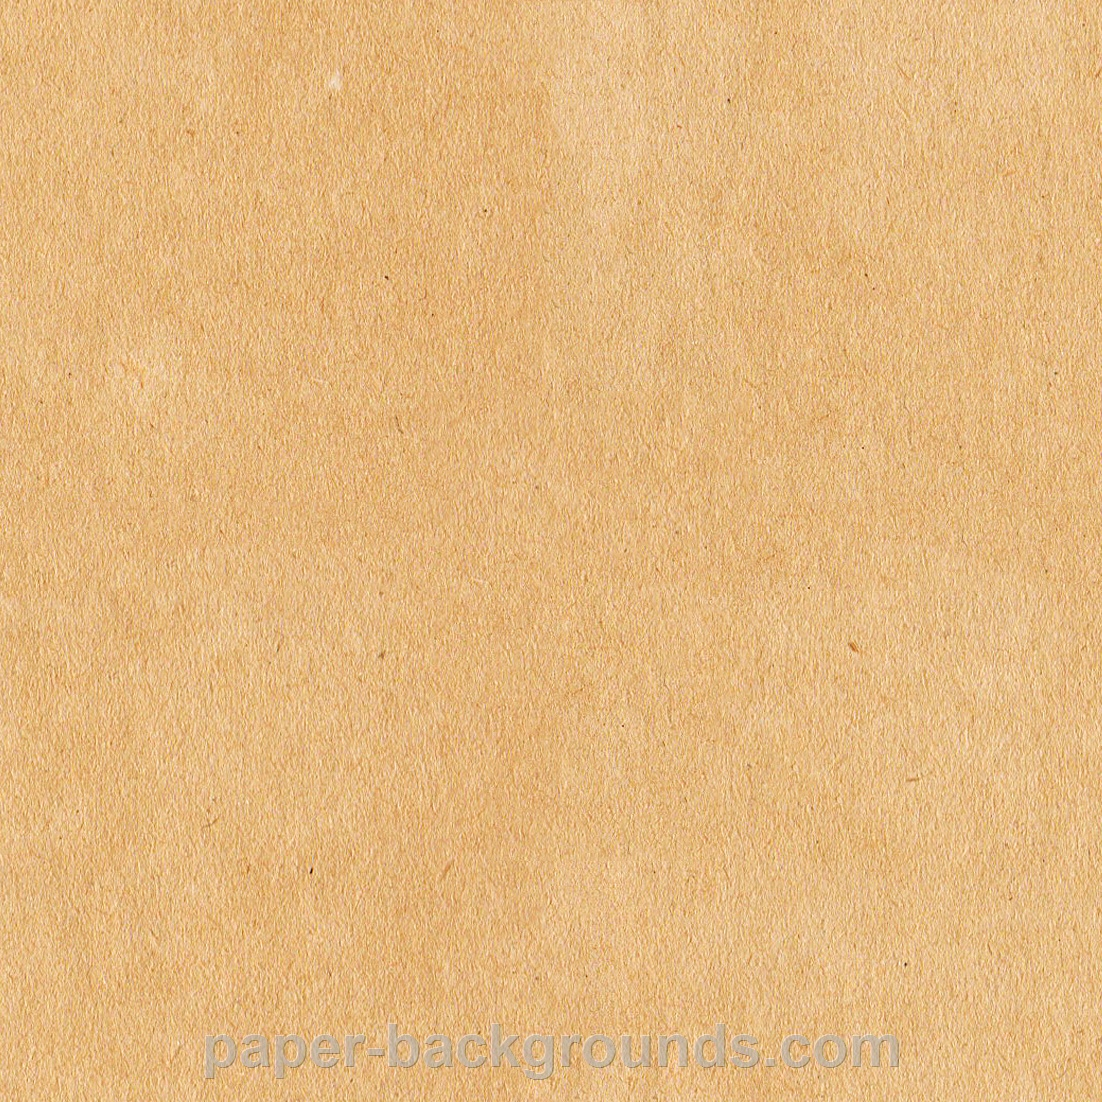 [47+] Brown Paper Wallpaper on WallpaperSafari